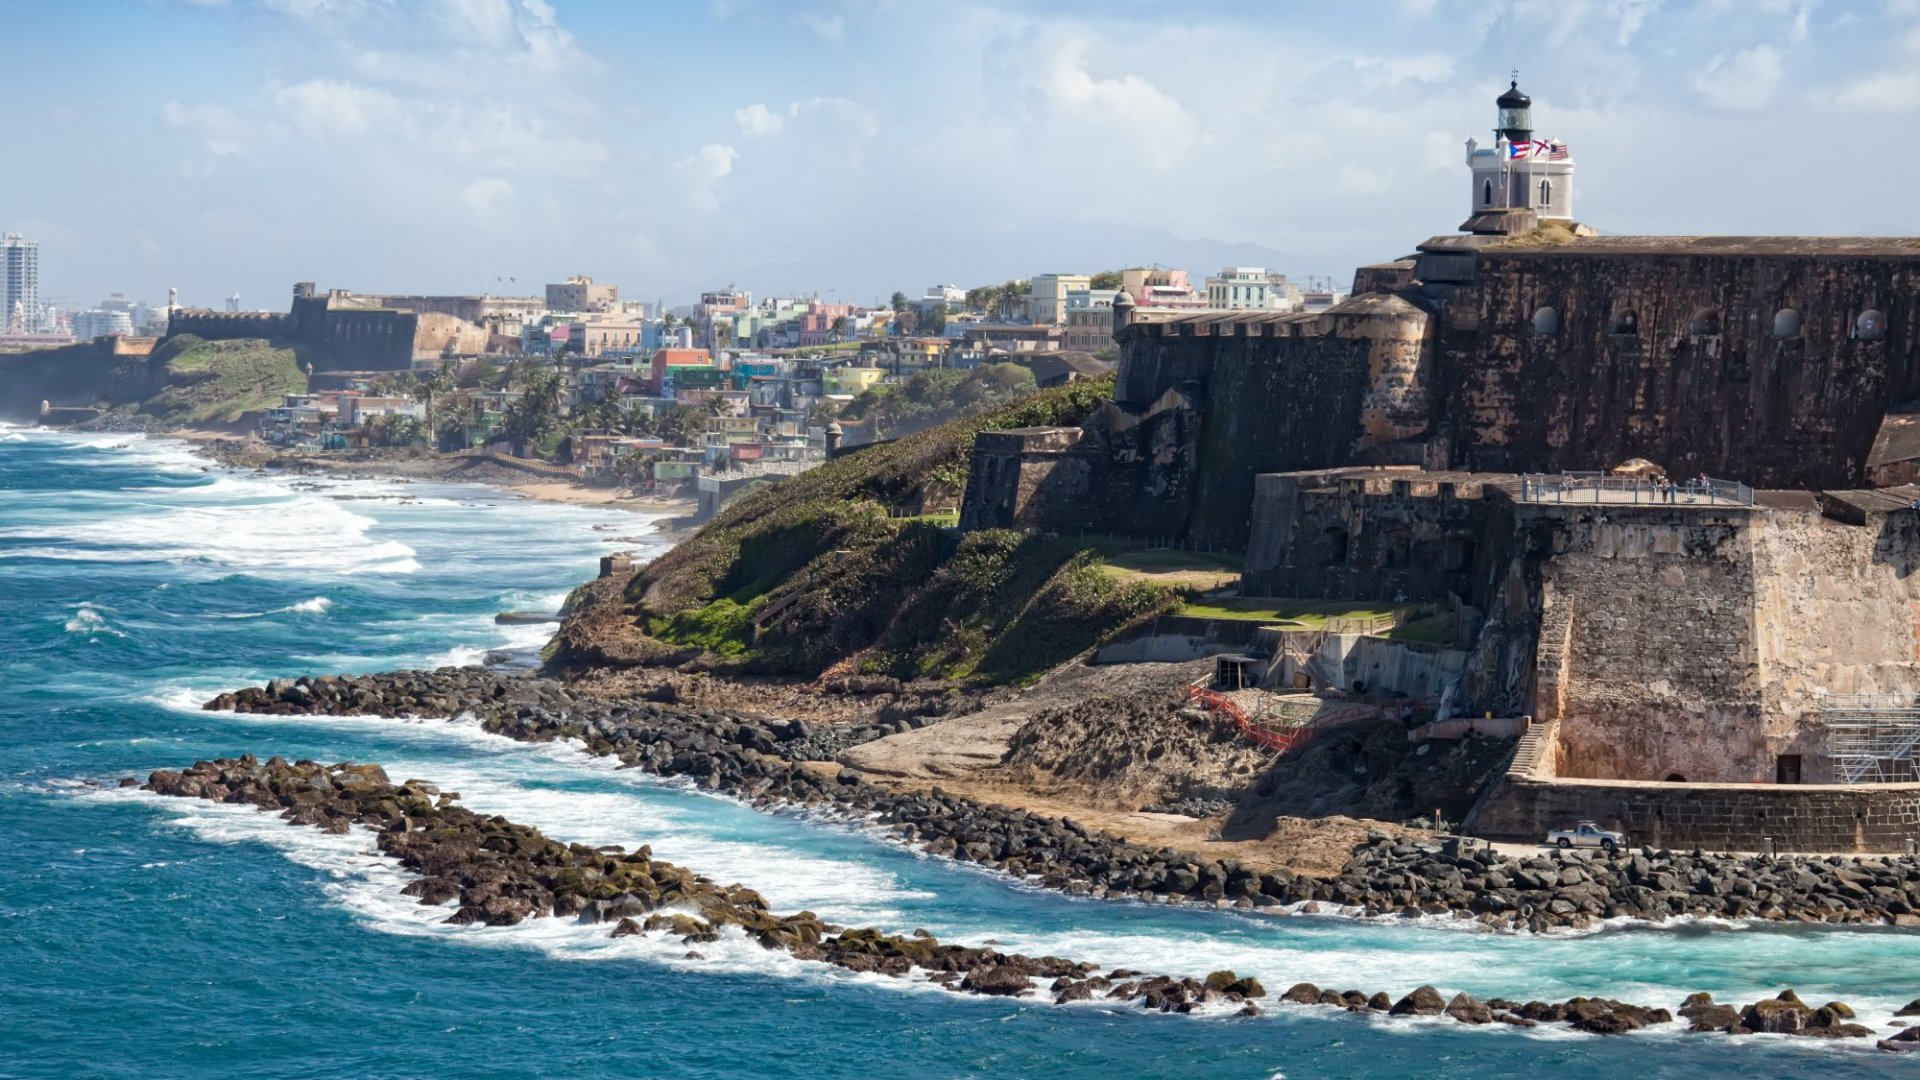 Puerto Rico: A Case Study in Tax Incentives and Acceleration to Build a Startup Ecosystem